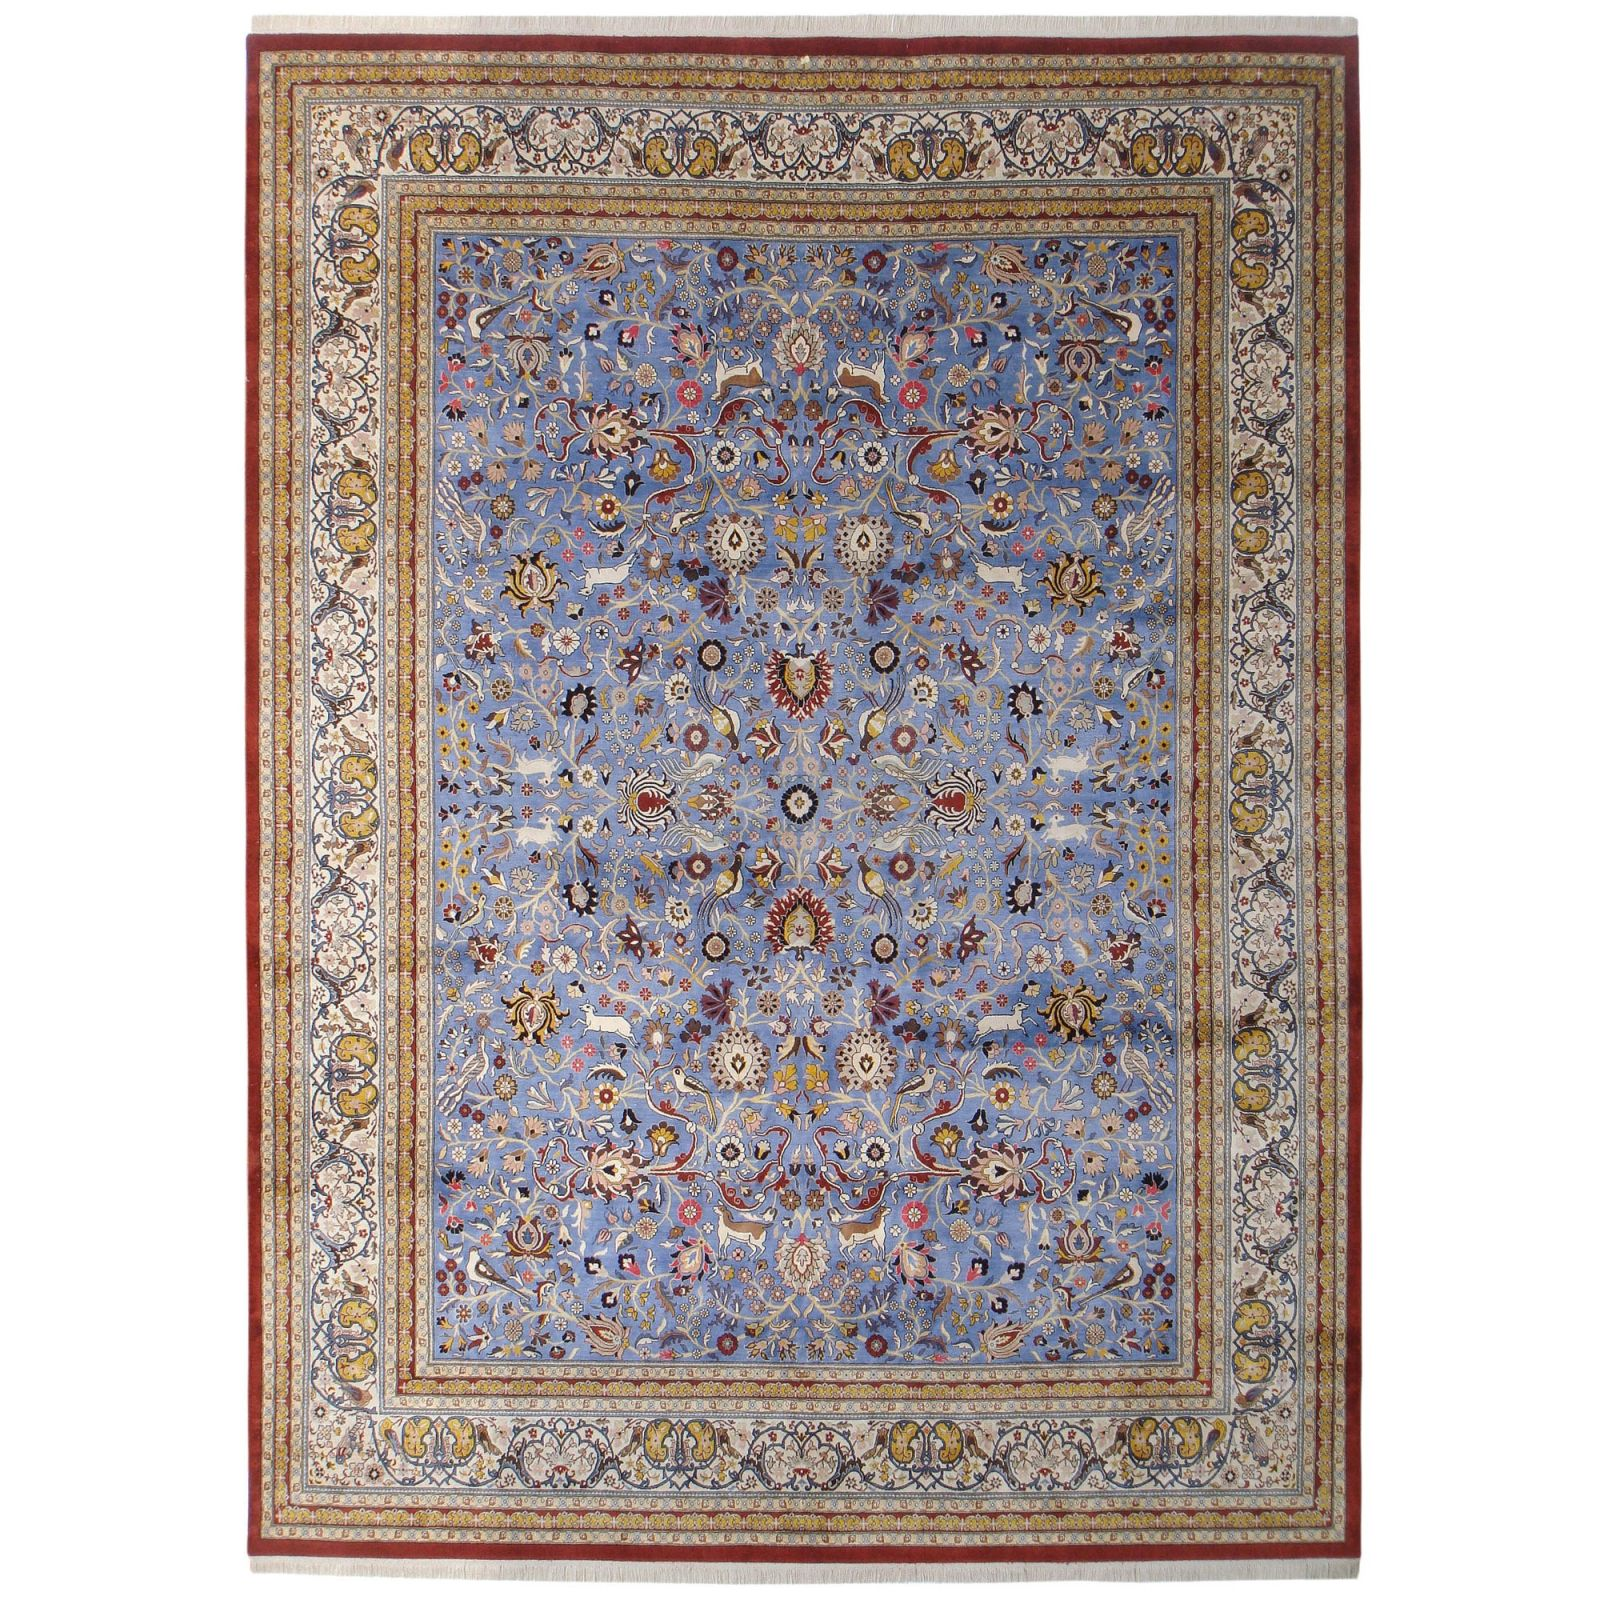 Tehran design silk carpet